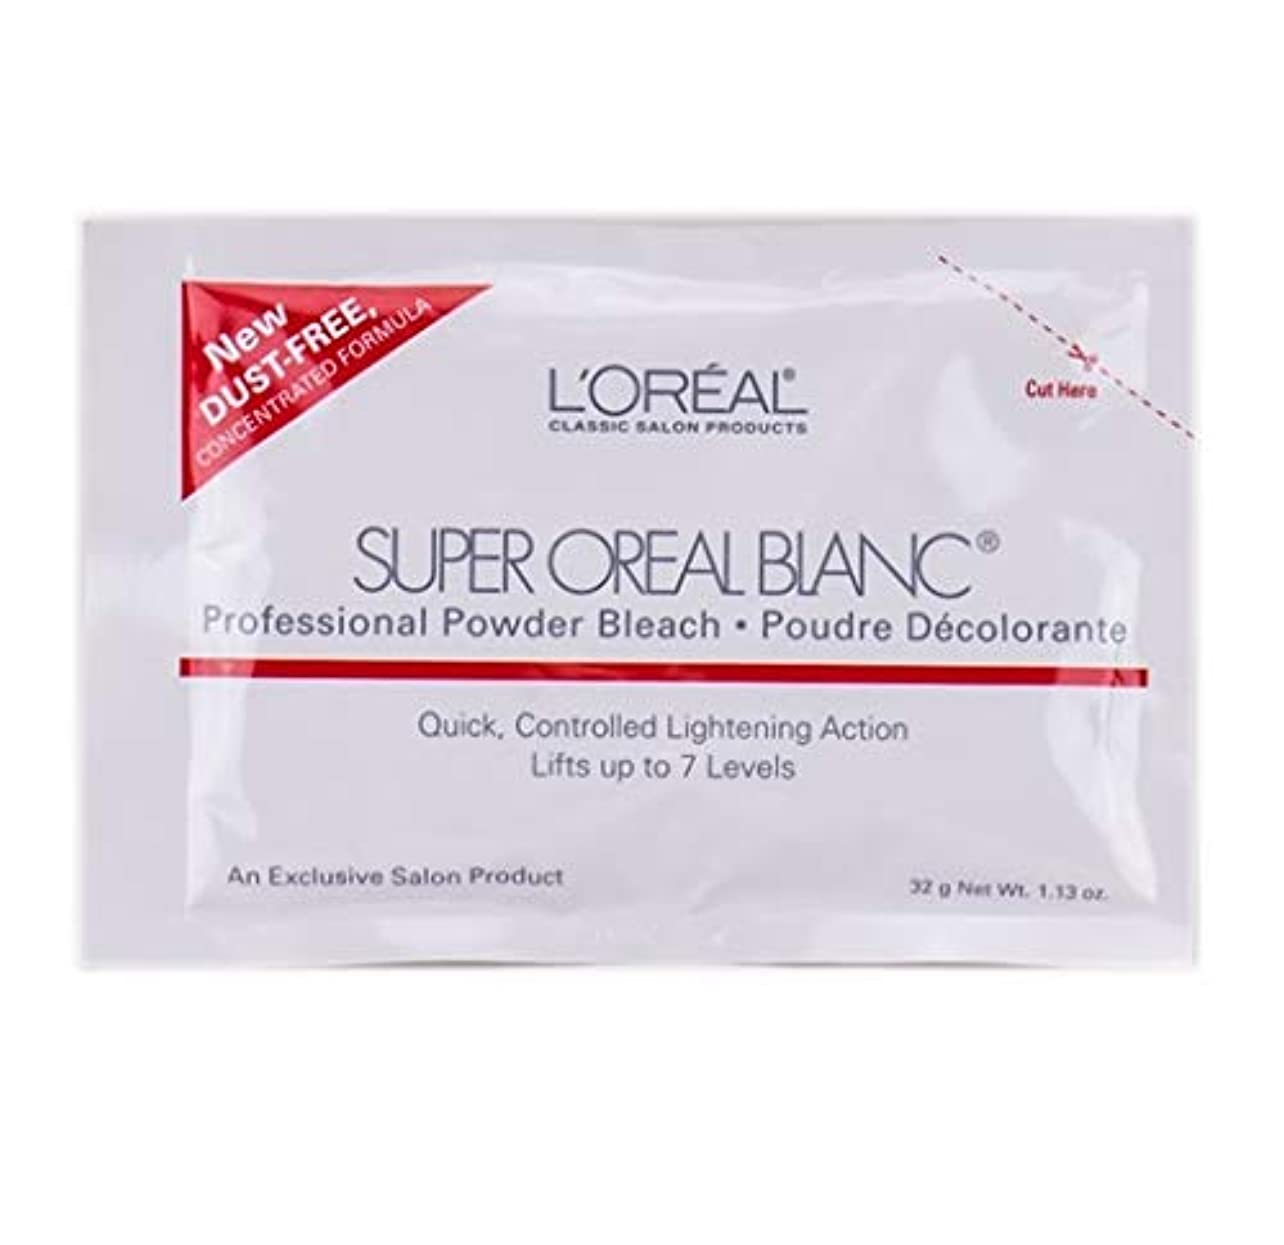 クリスマス説教する約L'Oreal Super Oreal Blanc - Powder Bleach Packette - 1.13oz / 32g